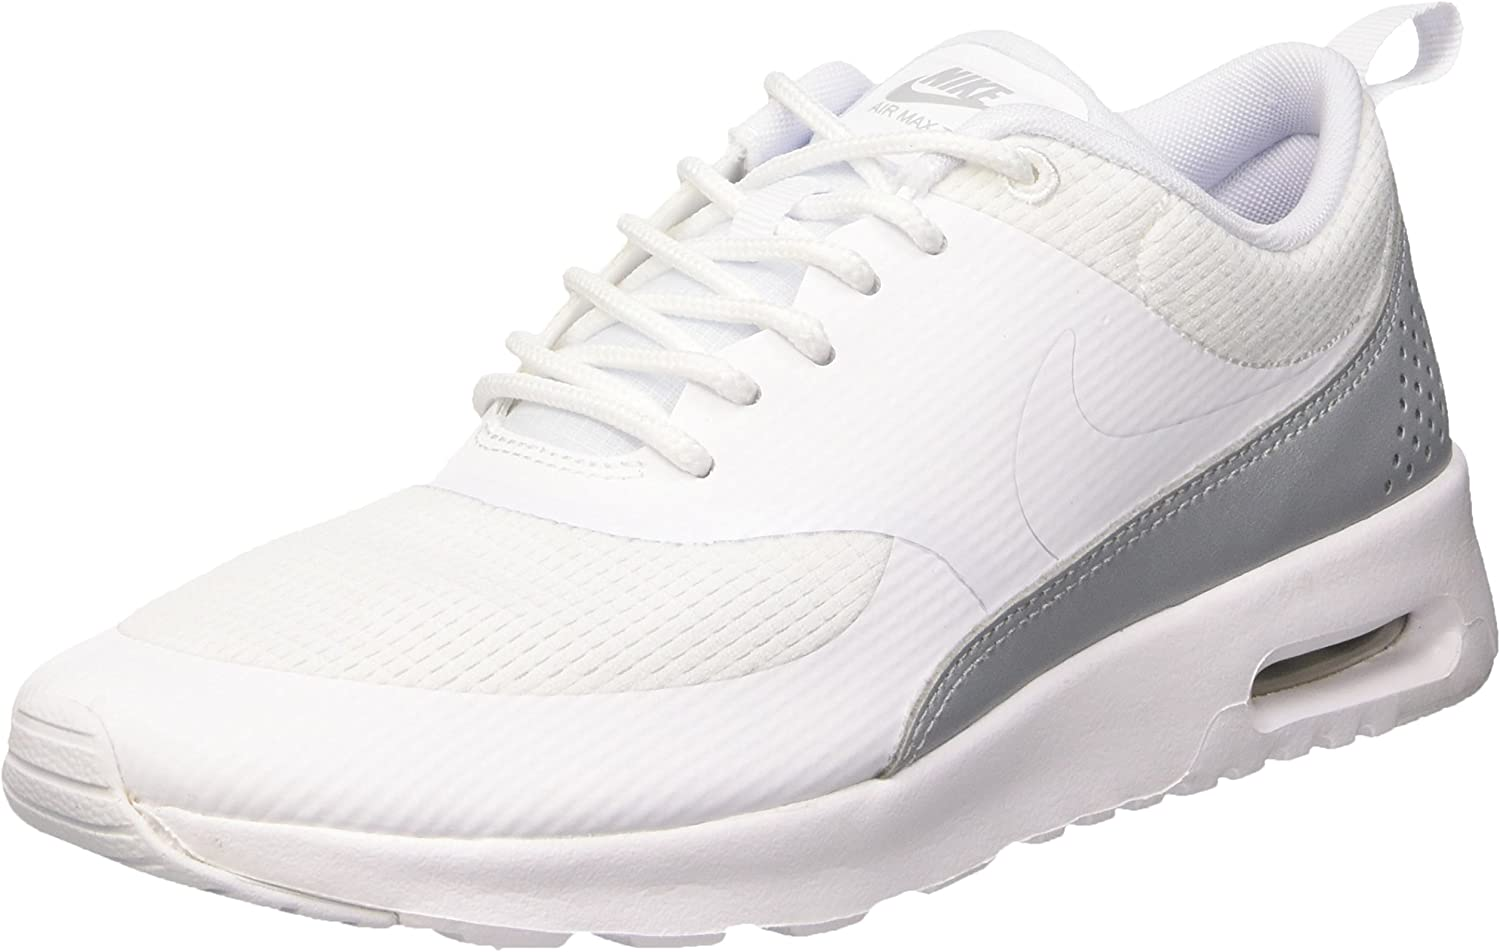 Nike Womens Air Max Thea Round Toe Lace-Up Fashion Sneakers